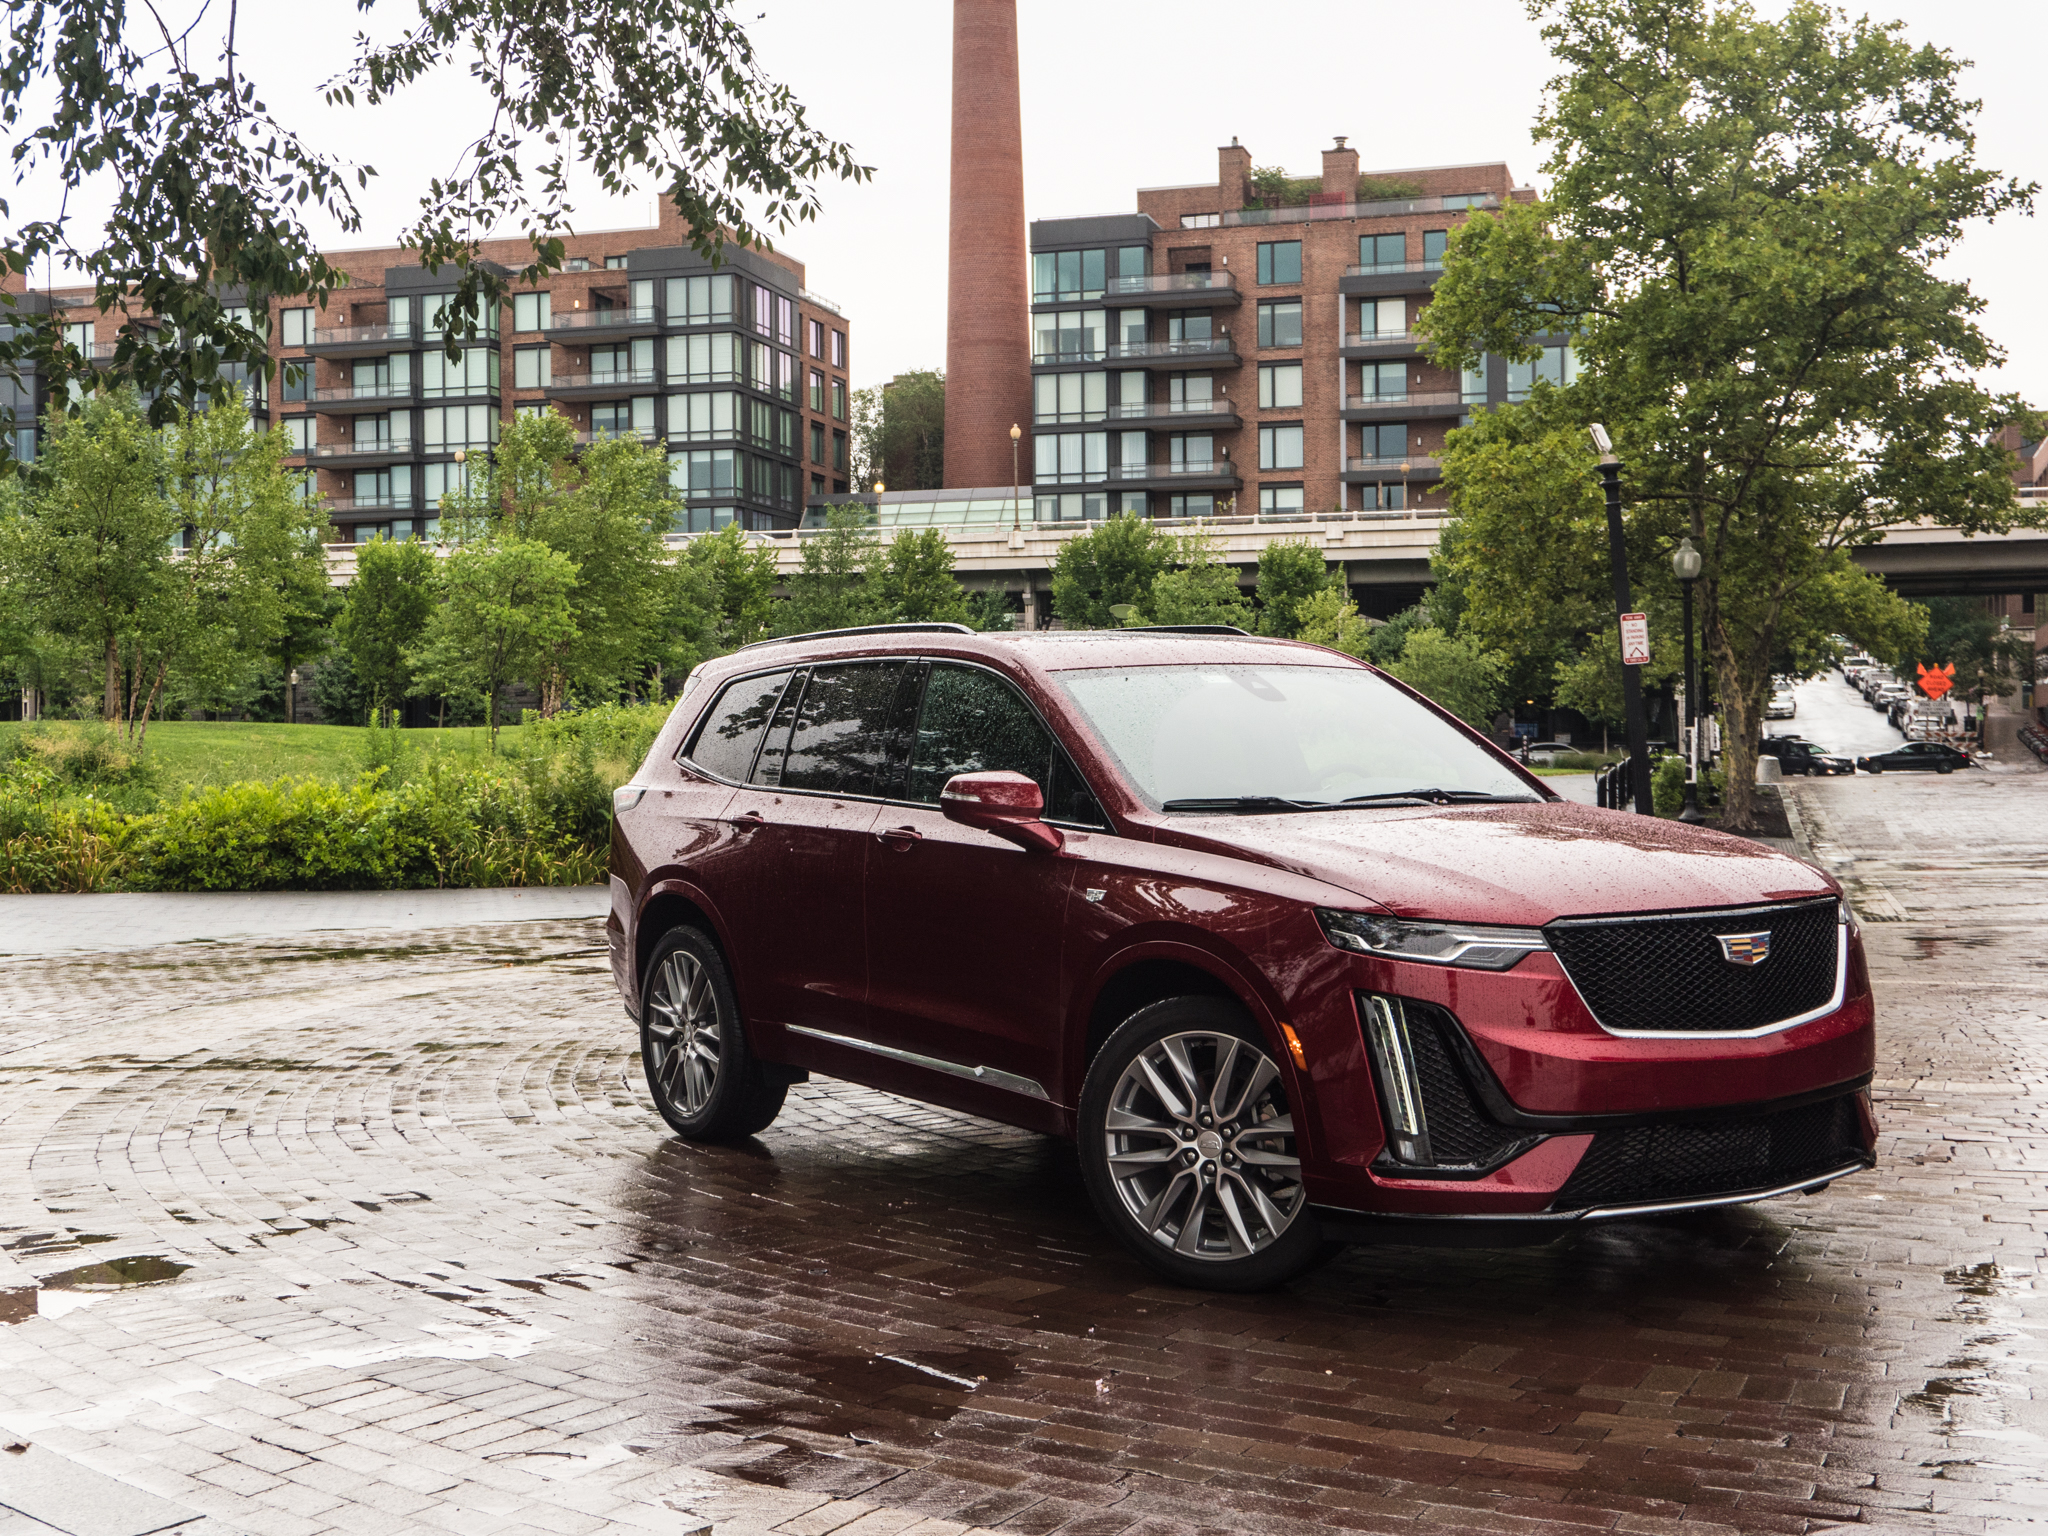 The 2020 Cadillac Xt6 Better Than An Escalade In Every Way